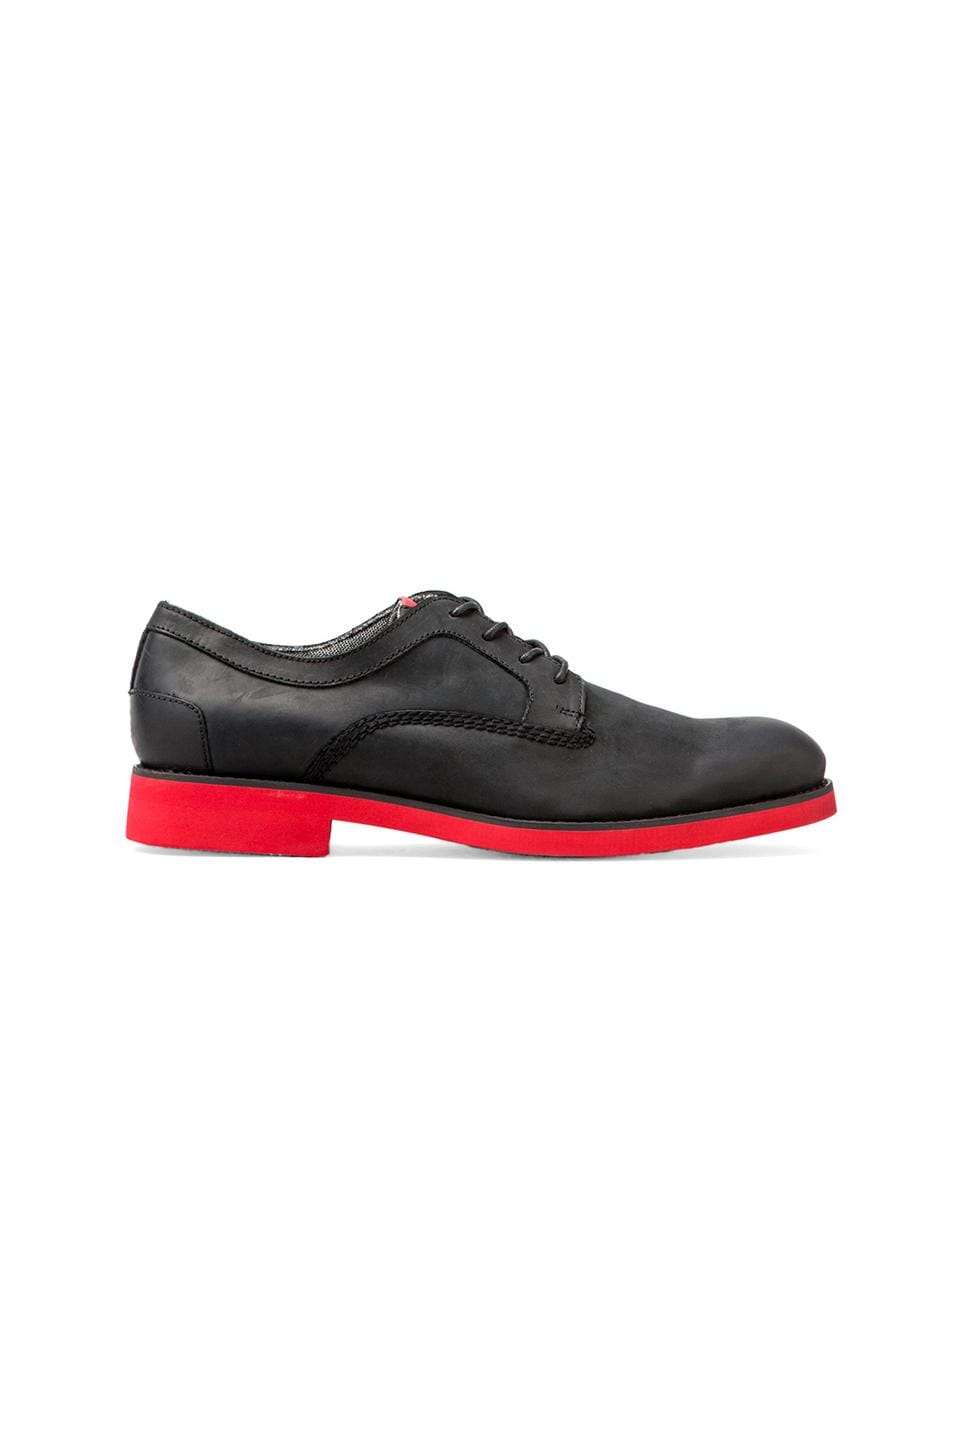 Wolverine 1883 Theo in Black/Red